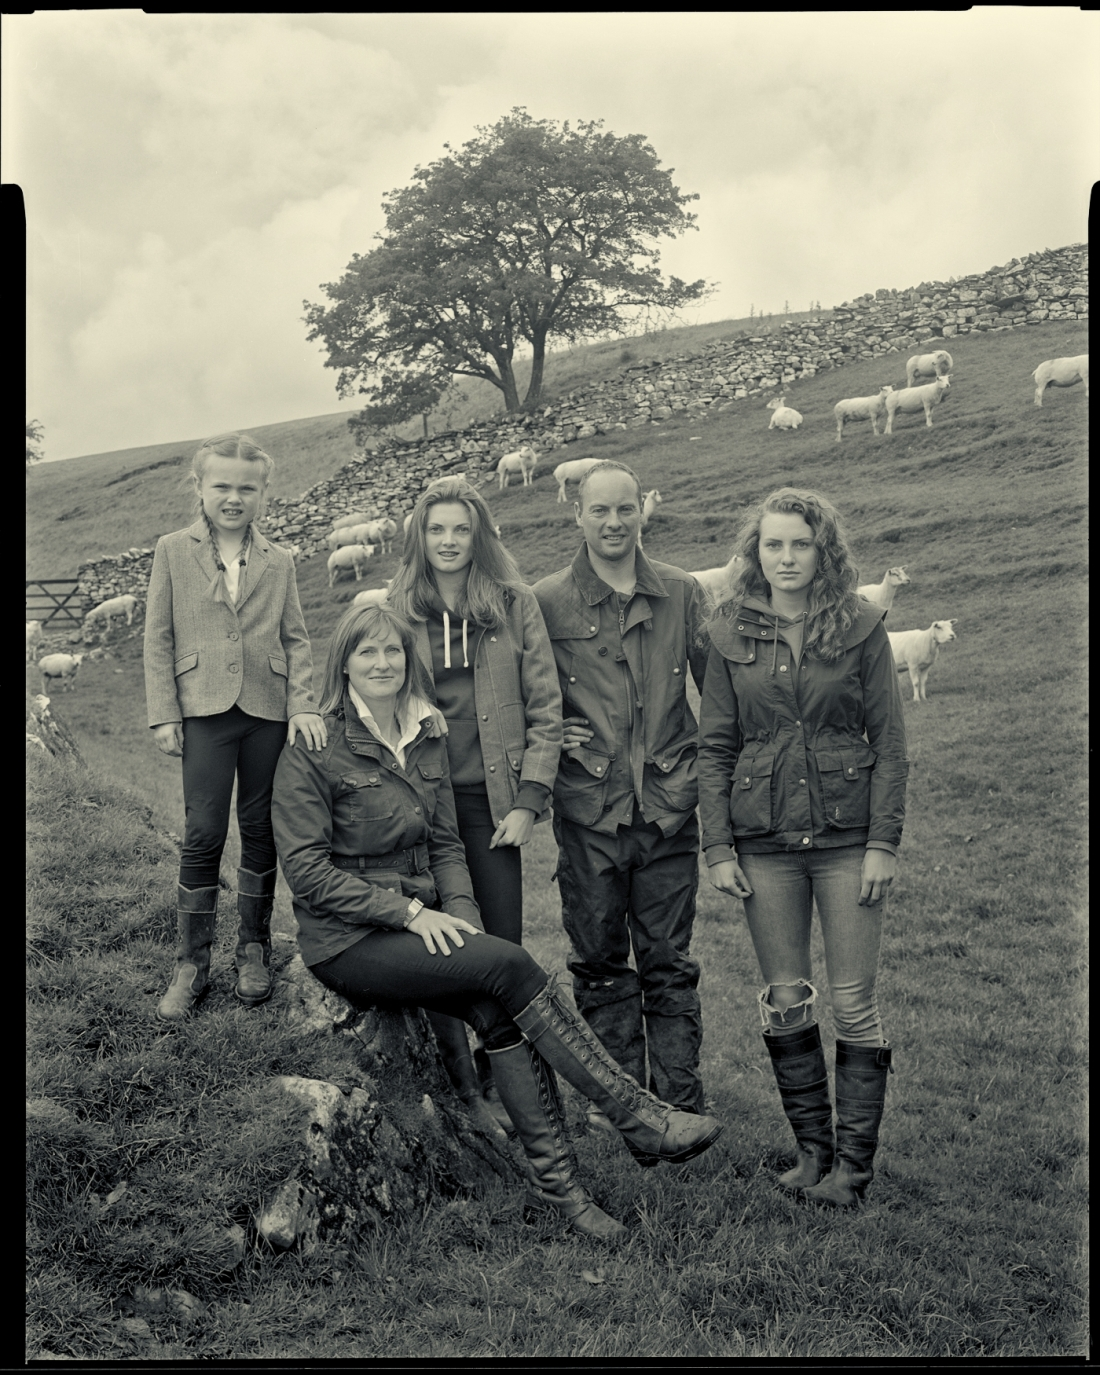 Andrew and Rachel Marston and Family, Easgill Head